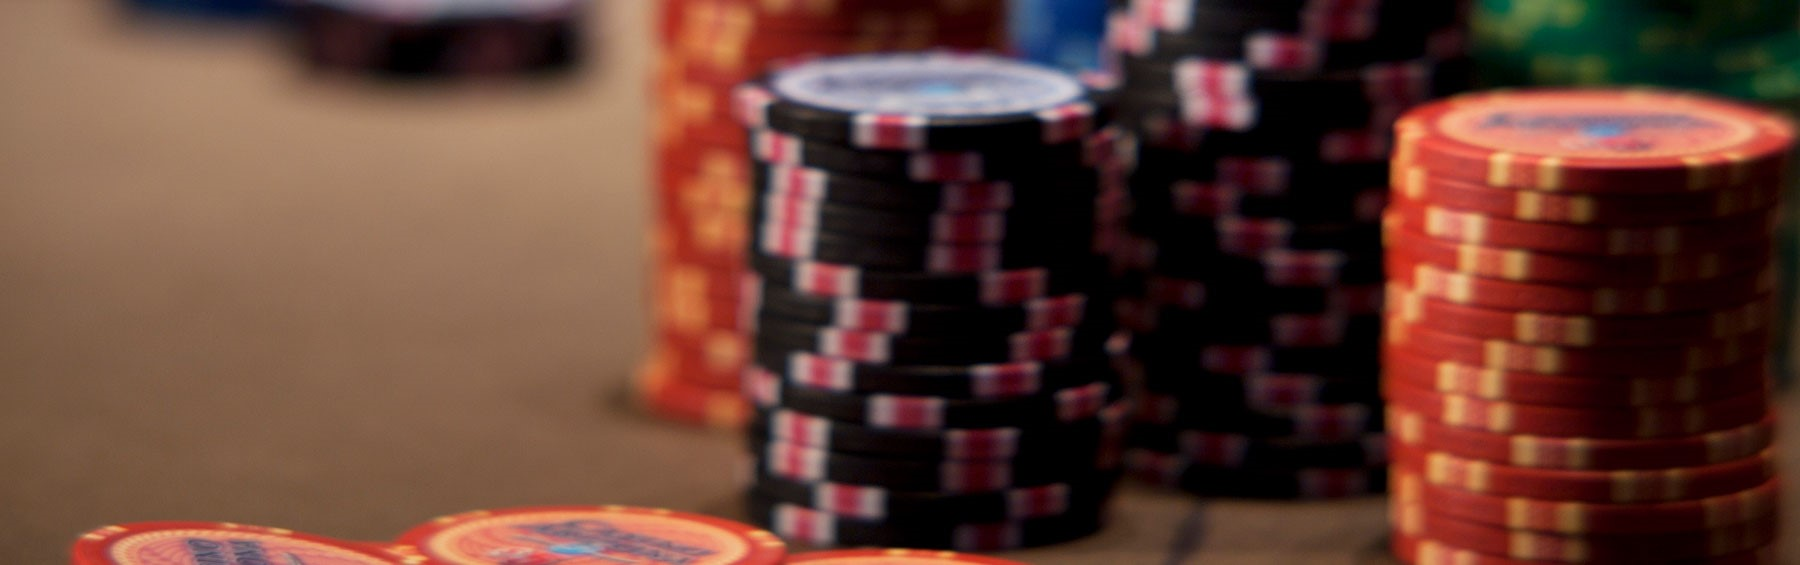 Super Bounty Tournament - Buy-in: $240